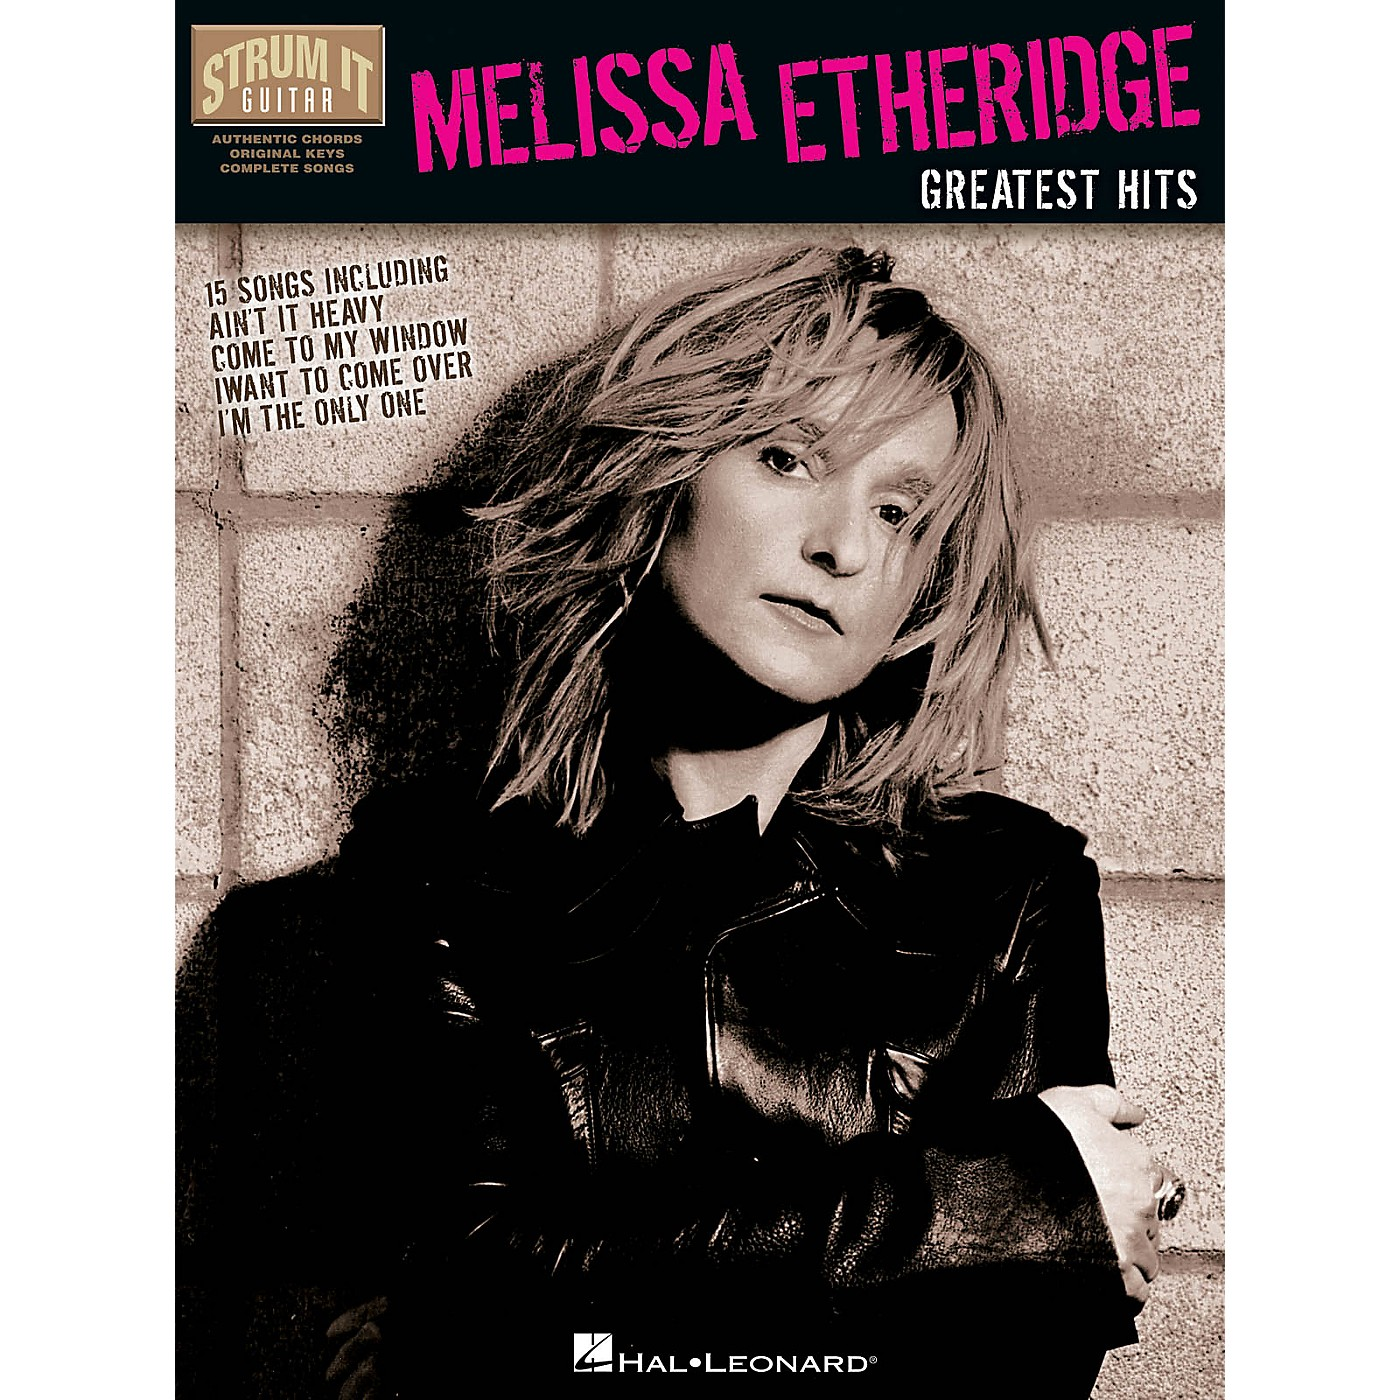 Hal Leonard Melissa Etheridge - Greatest Hits Strum It (Guitar) Series Softcover Performed by Melissa Etheridge thumbnail